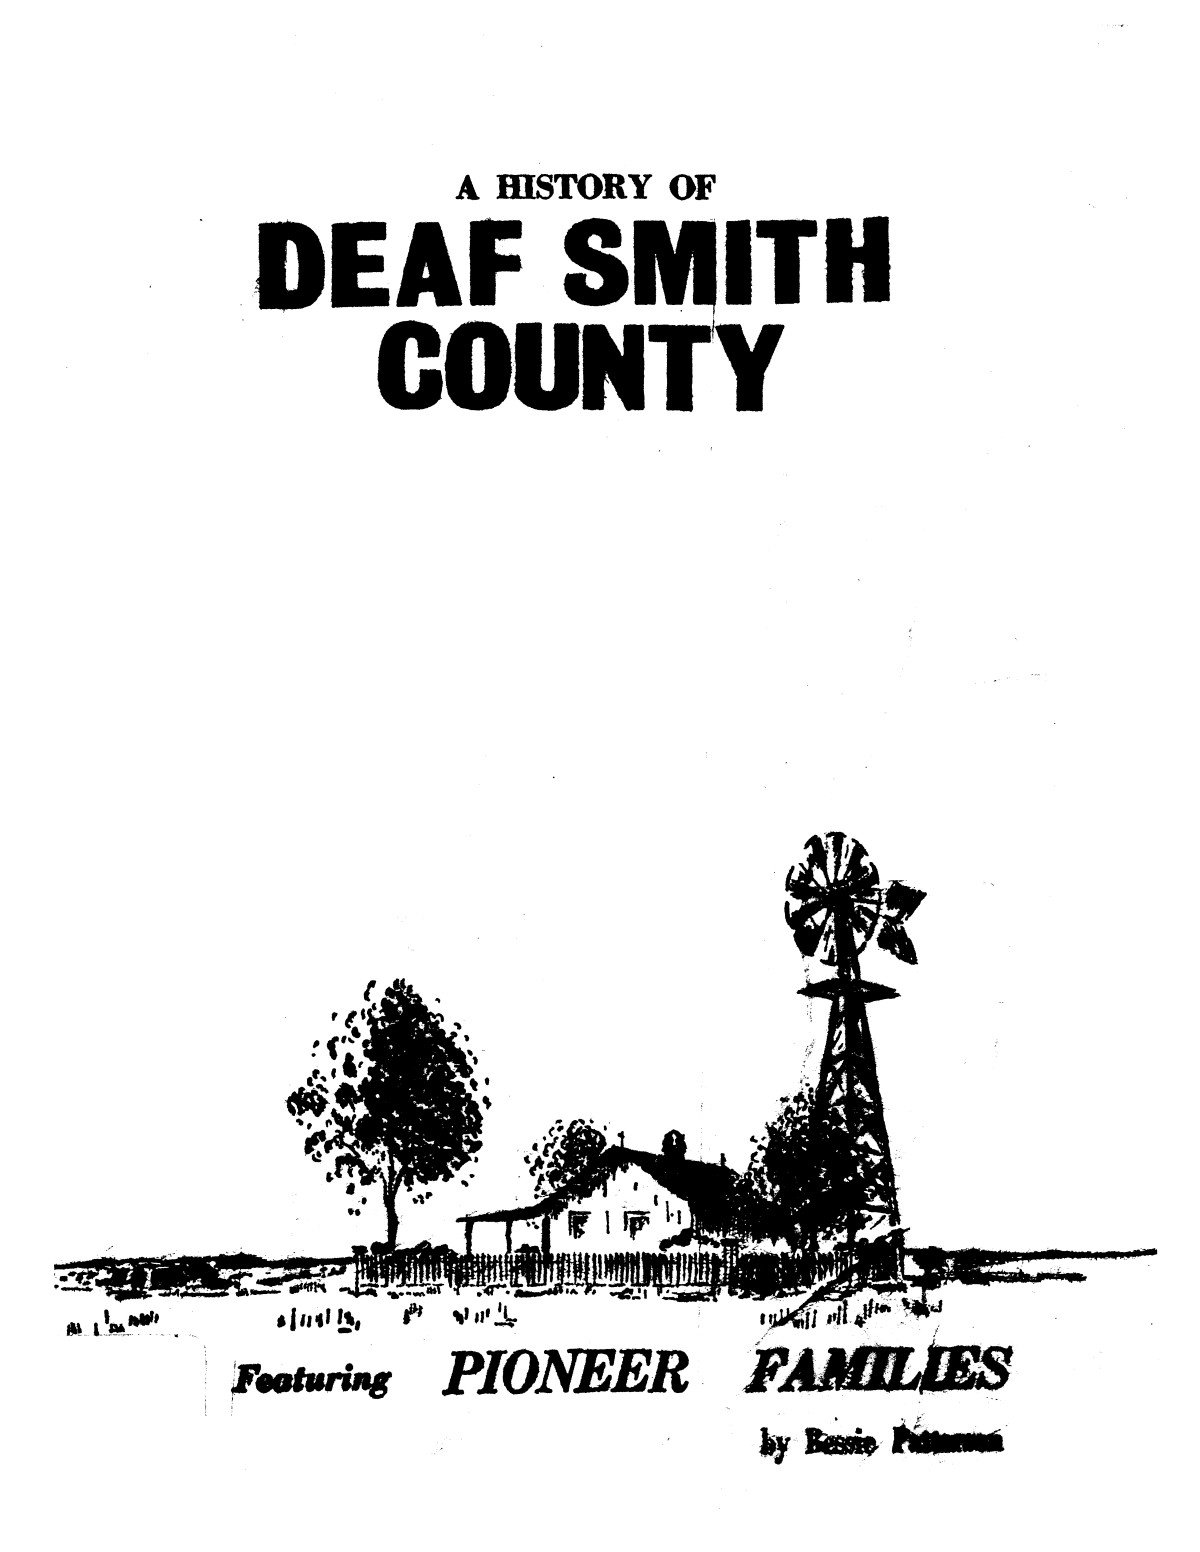 A history of Deaf Smith County, featuring pioneer families                                                                                                      [Sequence #]: 1 of 174